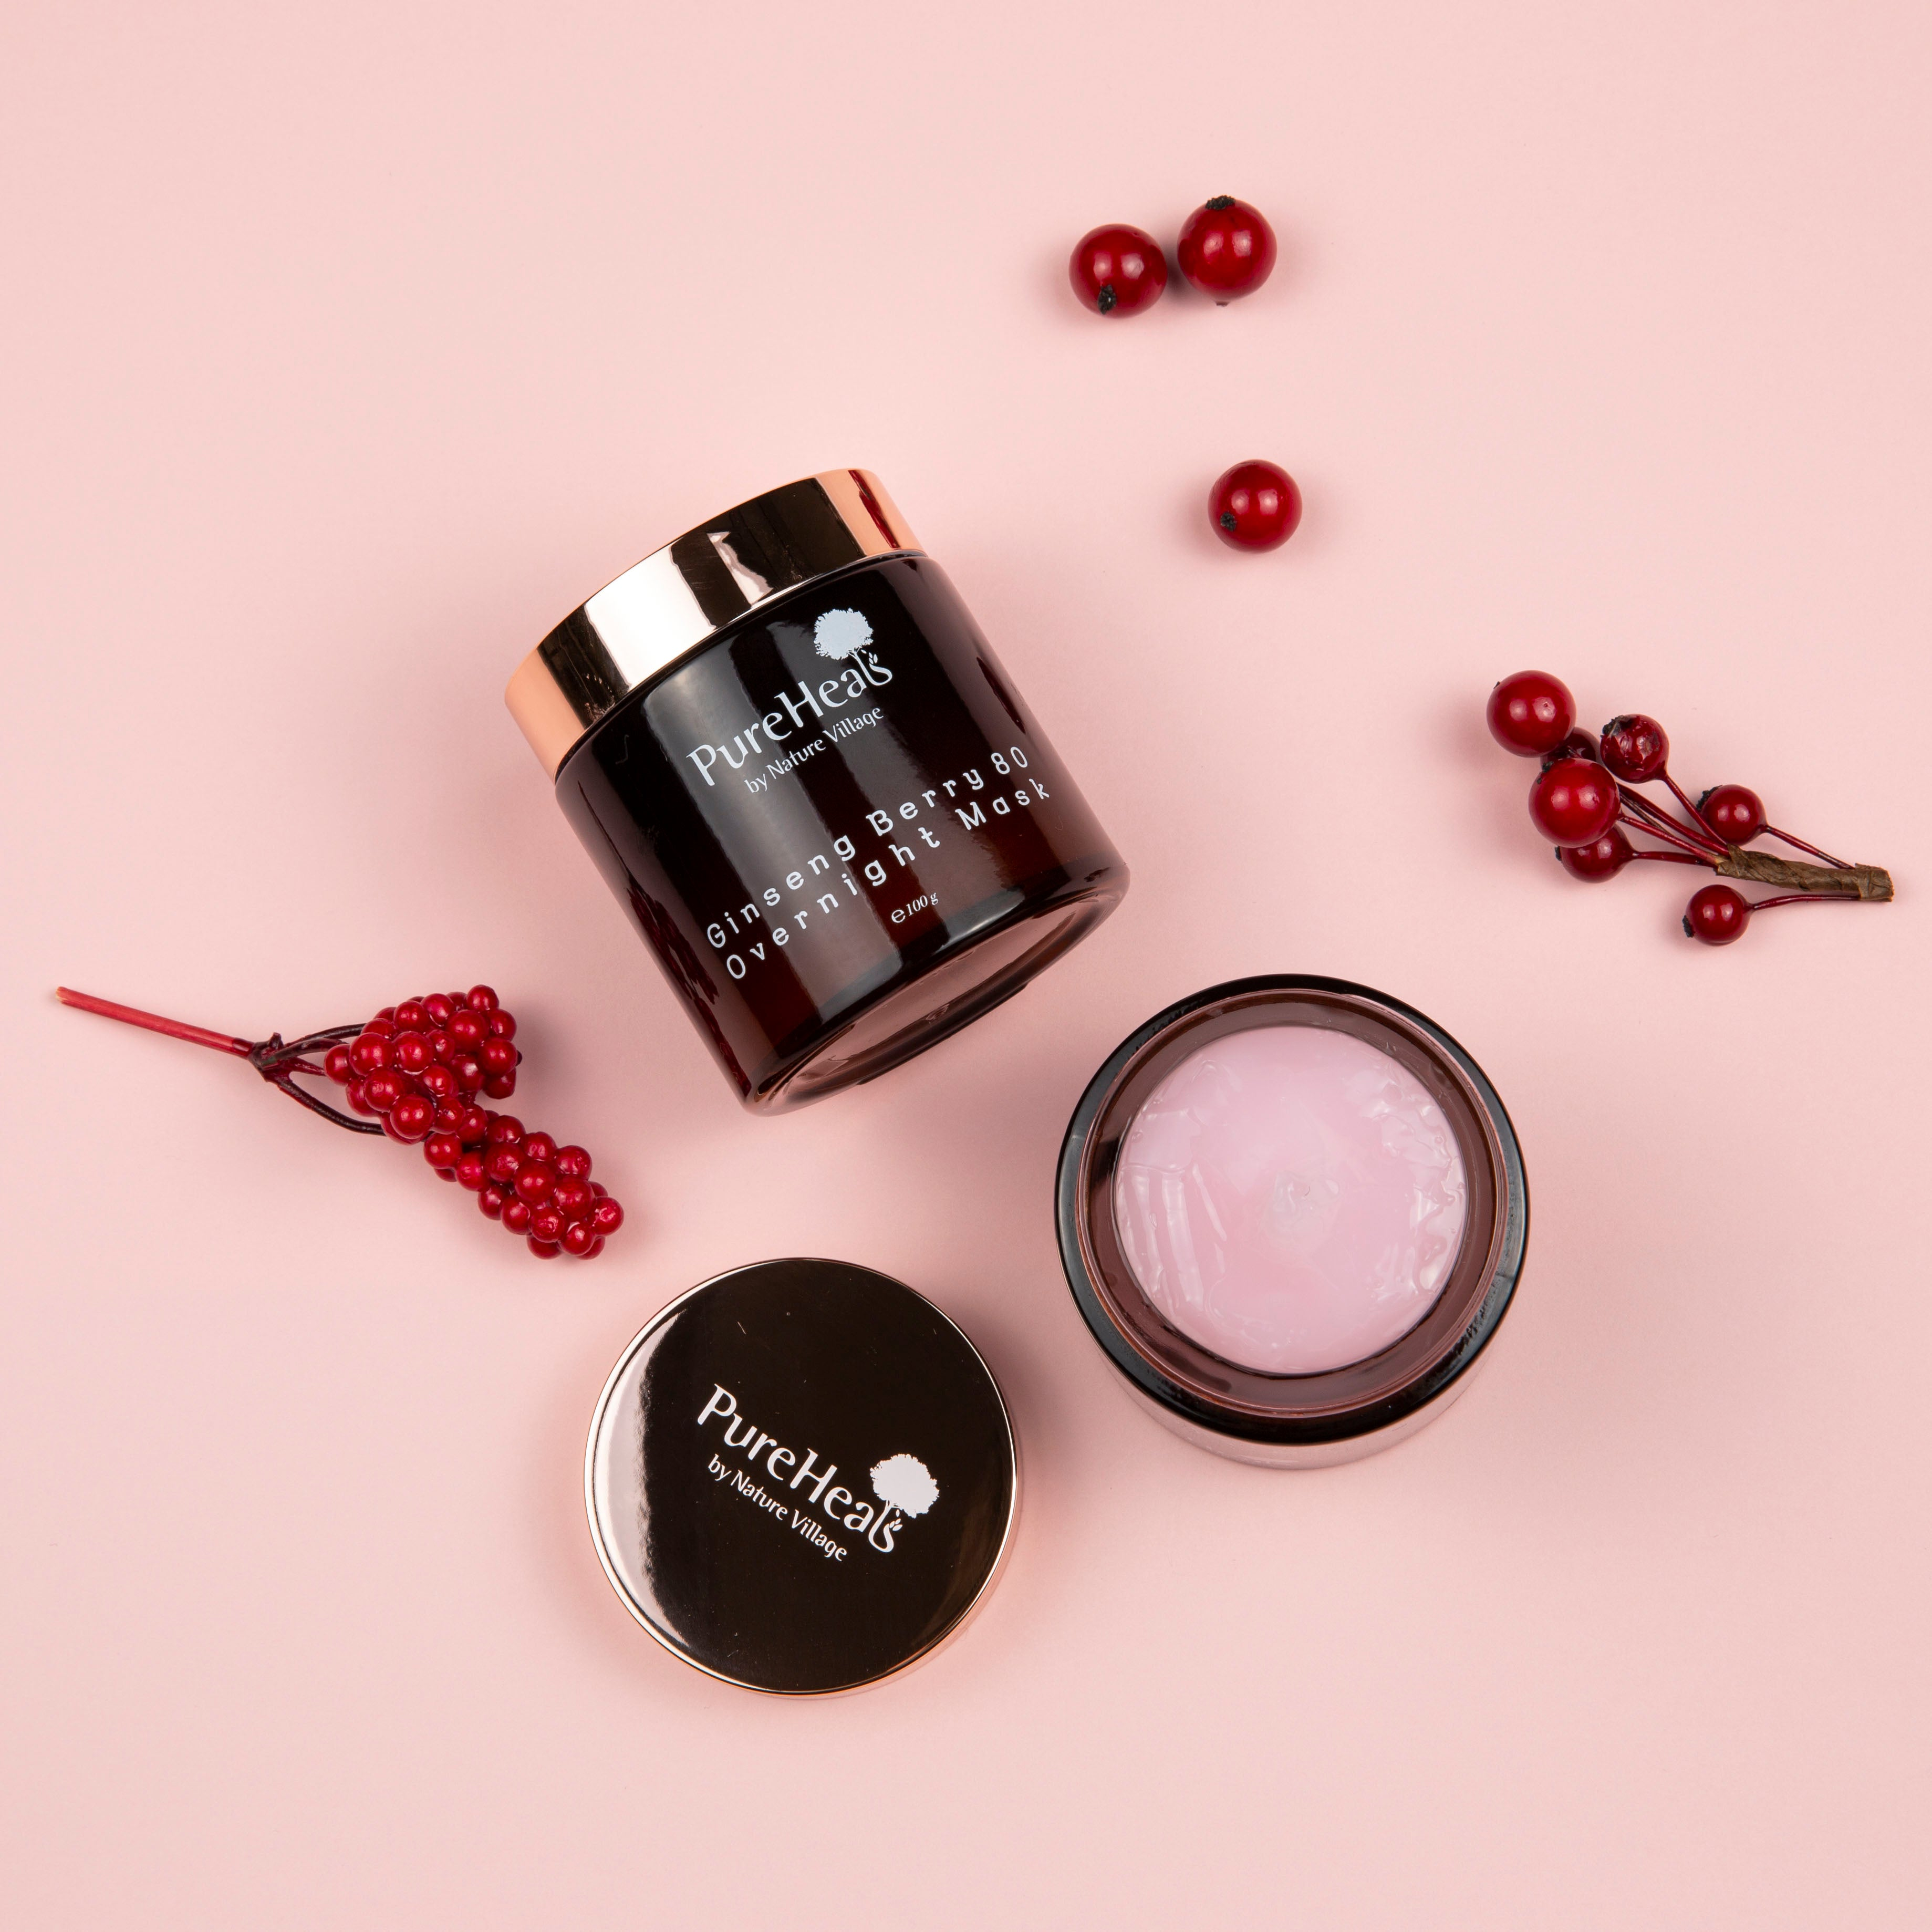 Ginseng Berry 80 Overnight Mask - Plump Shop